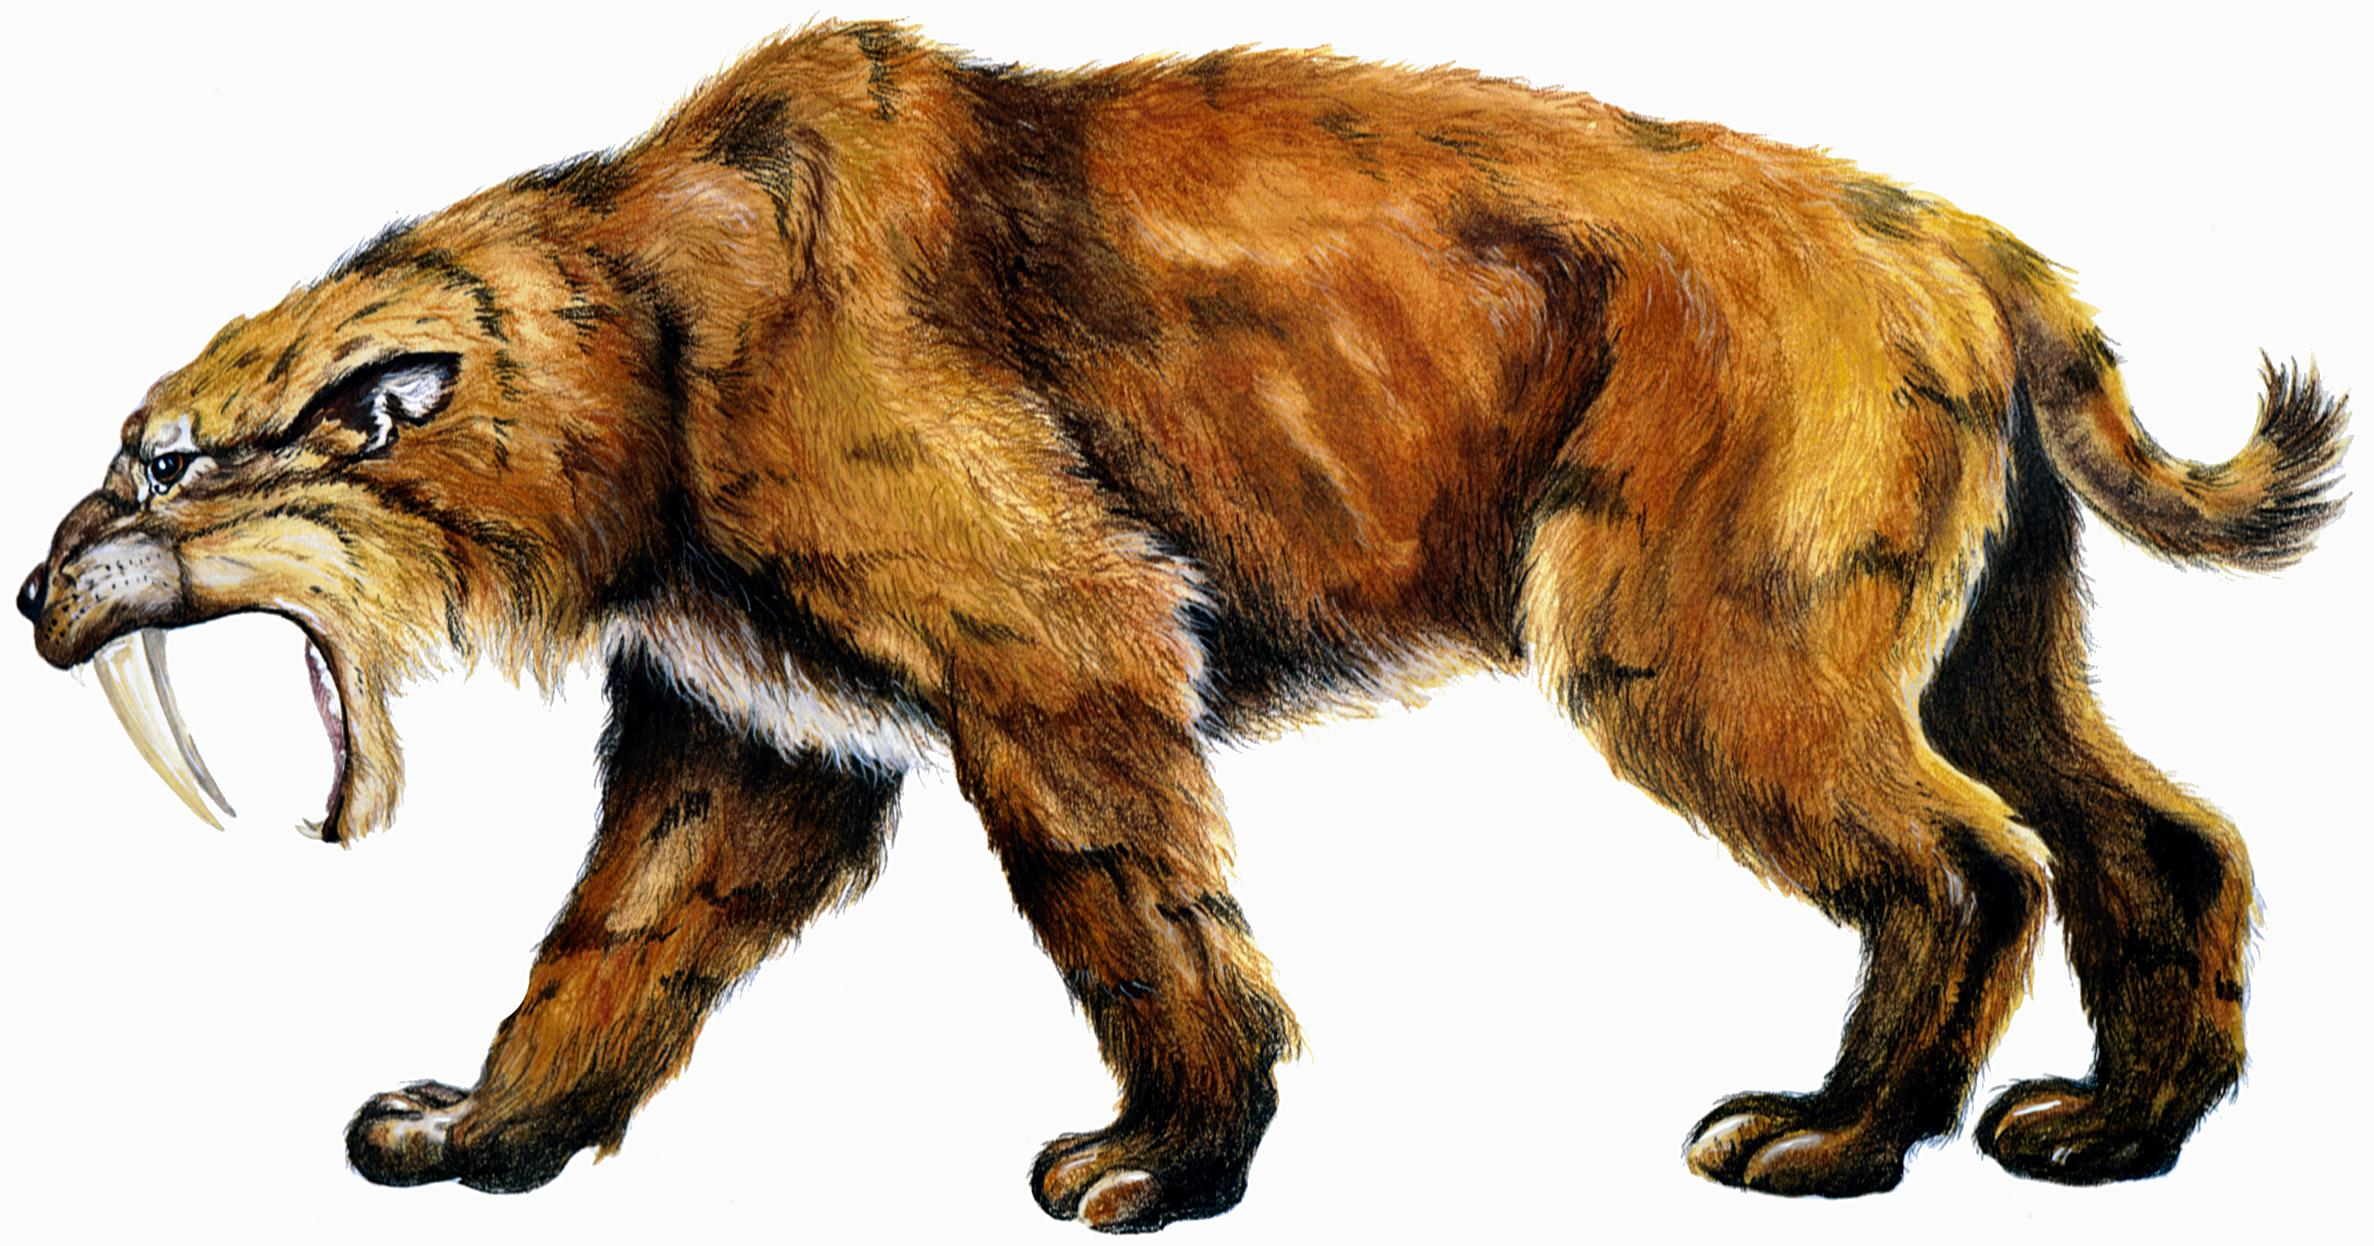 Saber-toothed cat (Smilodon fatalis). Credit: Indiana State Museum, via:  Indiana University